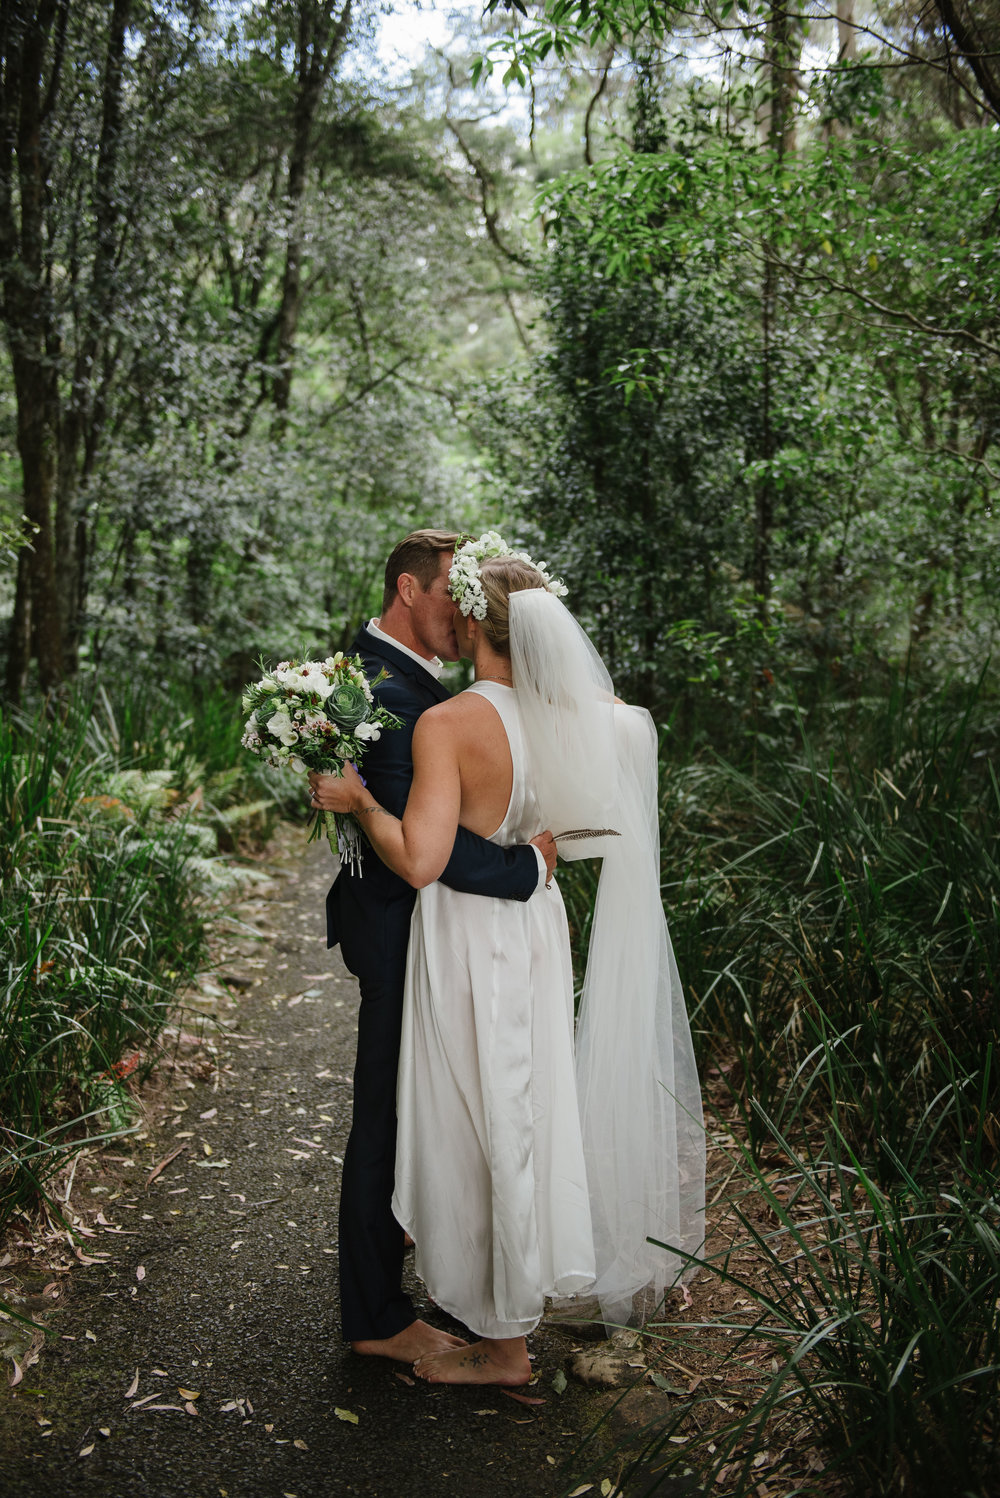 Carla and Luke- wedding photographer, byron bay wedding and family photographer, tweed heads wedding and family photography-325.jpg